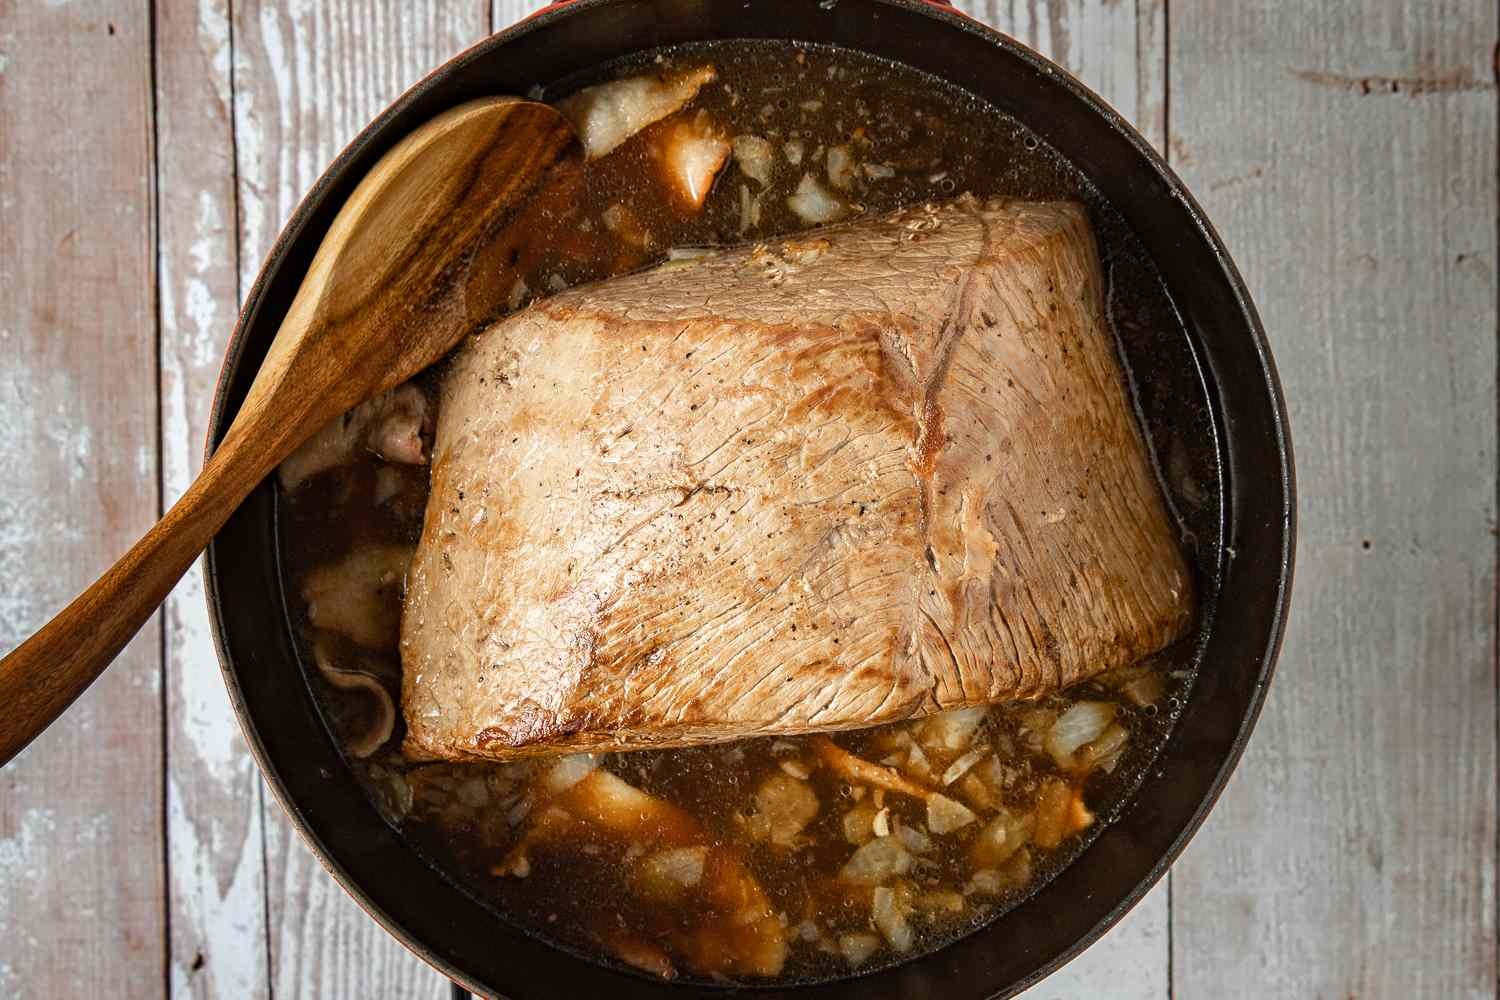 Add the onion, bacon, apple juice, beef broth and vinegar to the roast in the pan